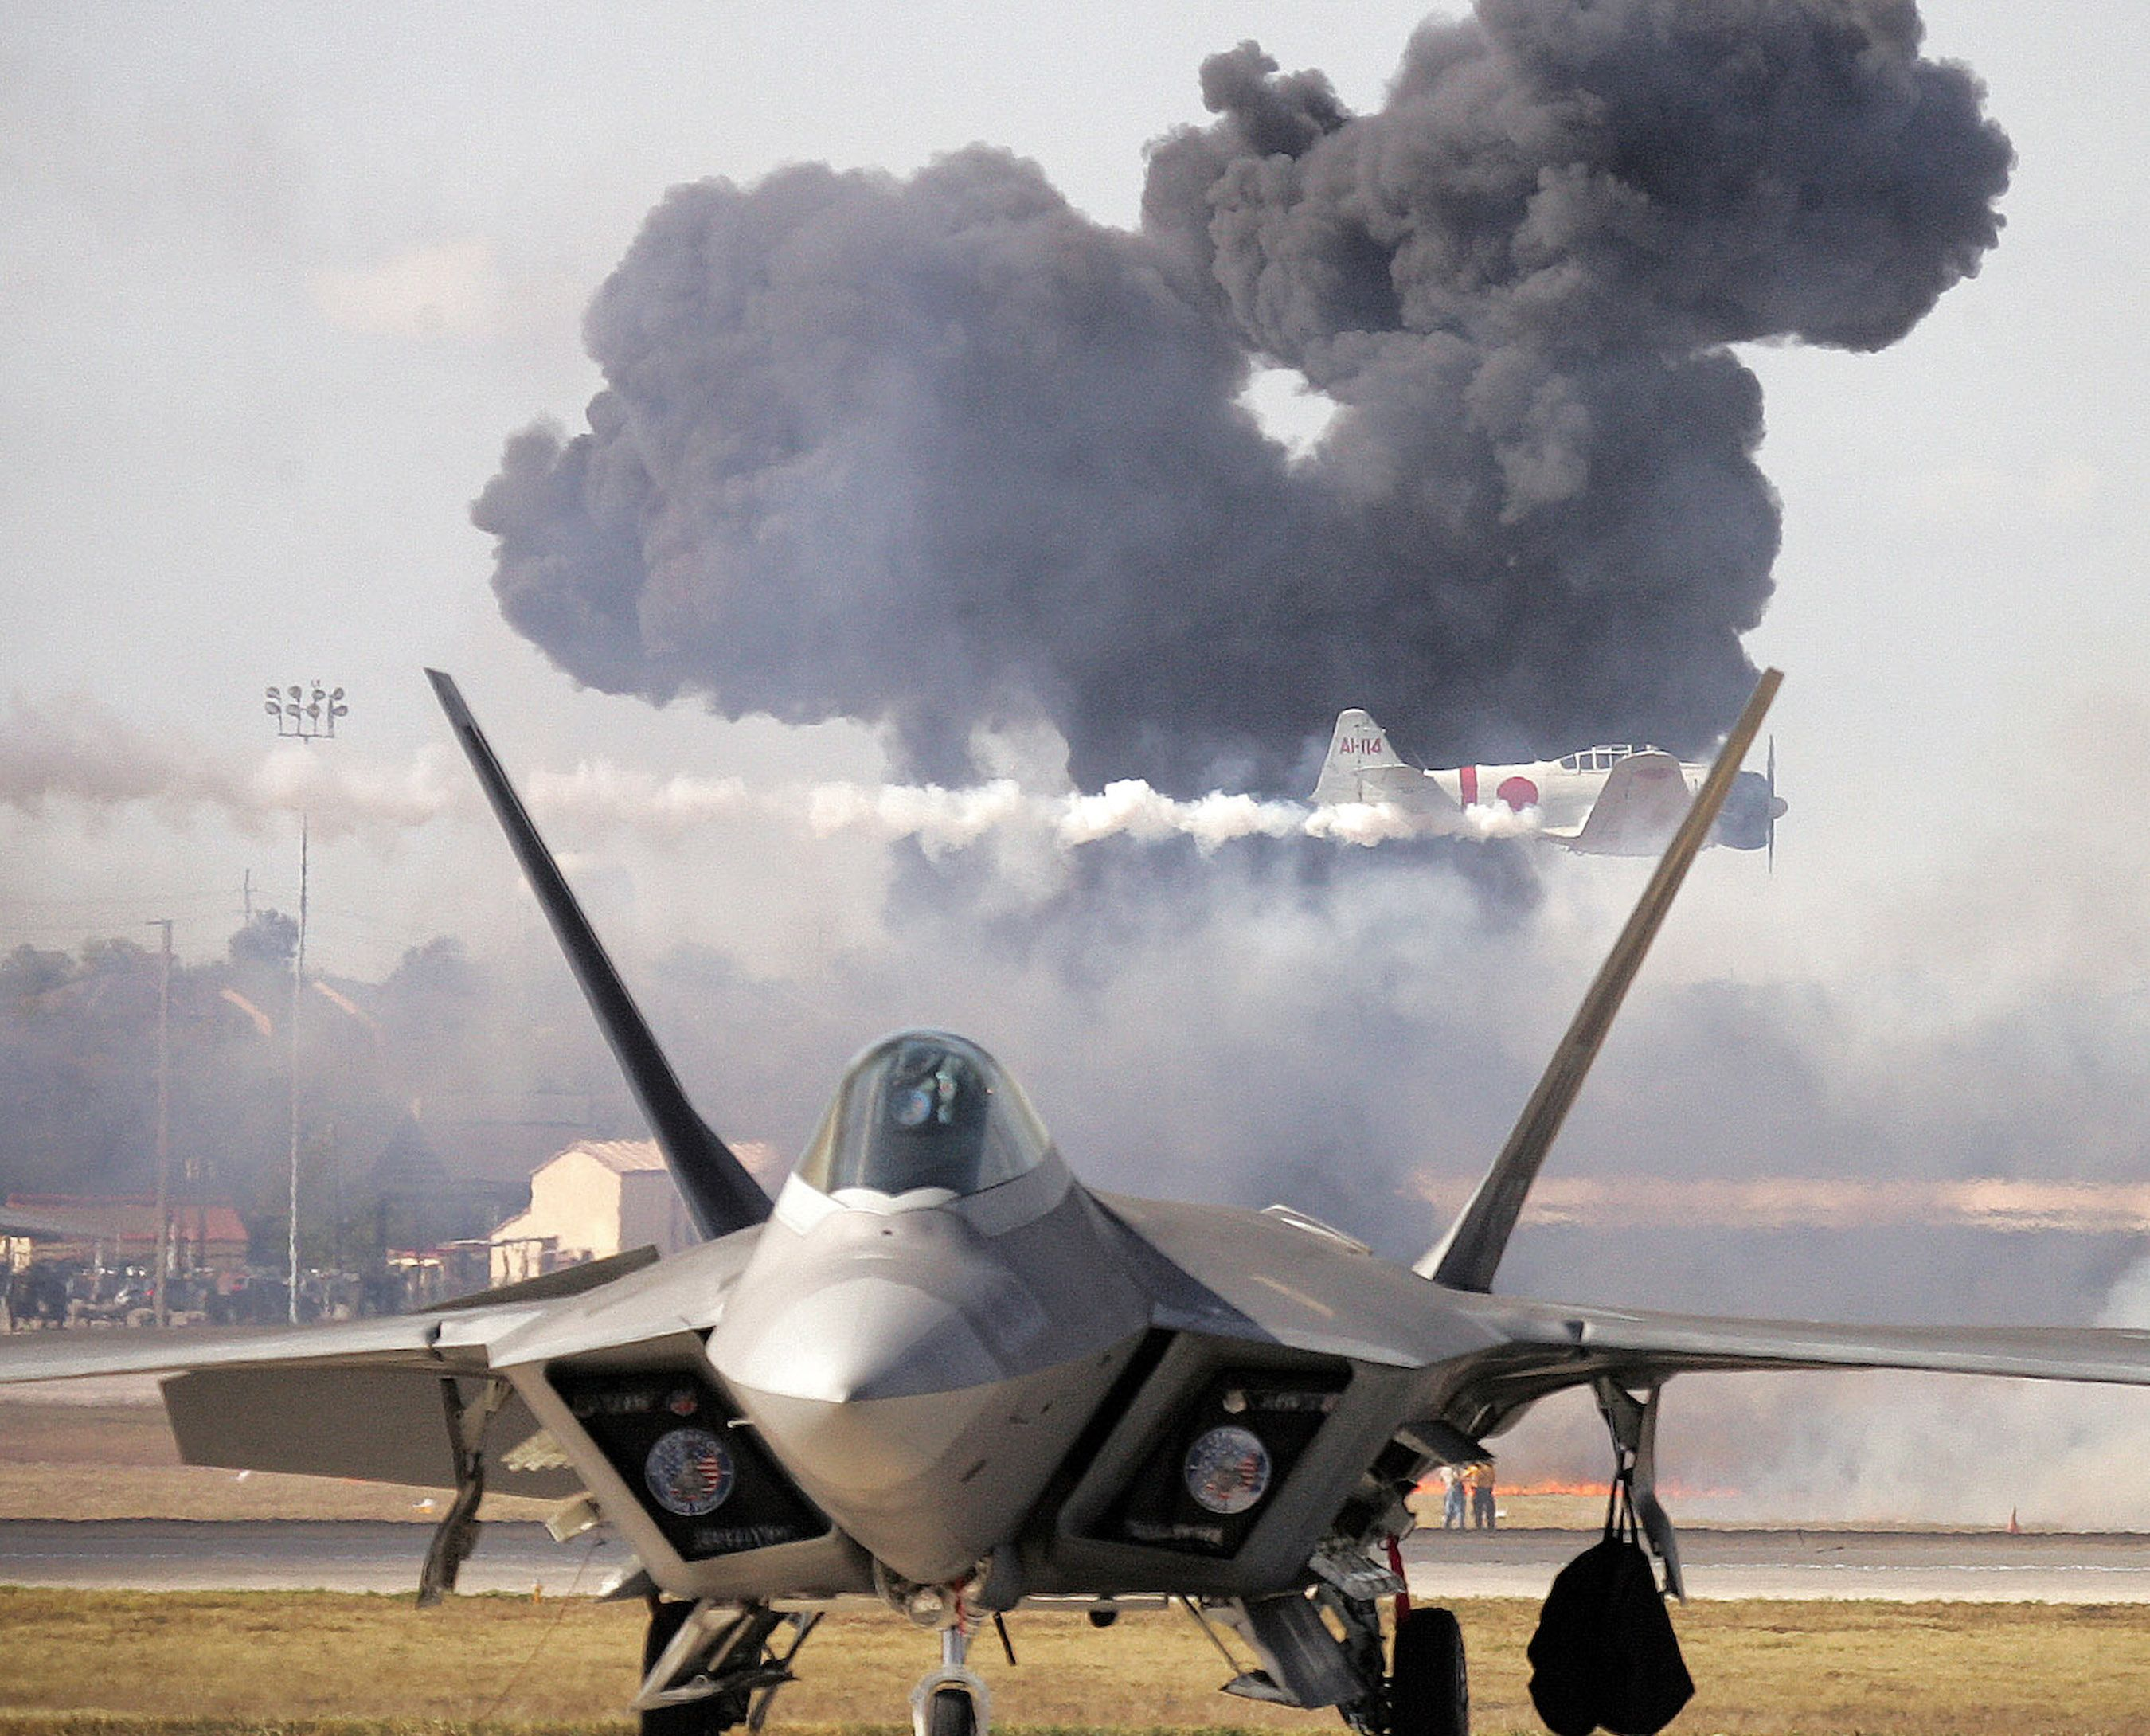 The Lockheed Martin F-22 Raptor - USD 400m per aircraft!